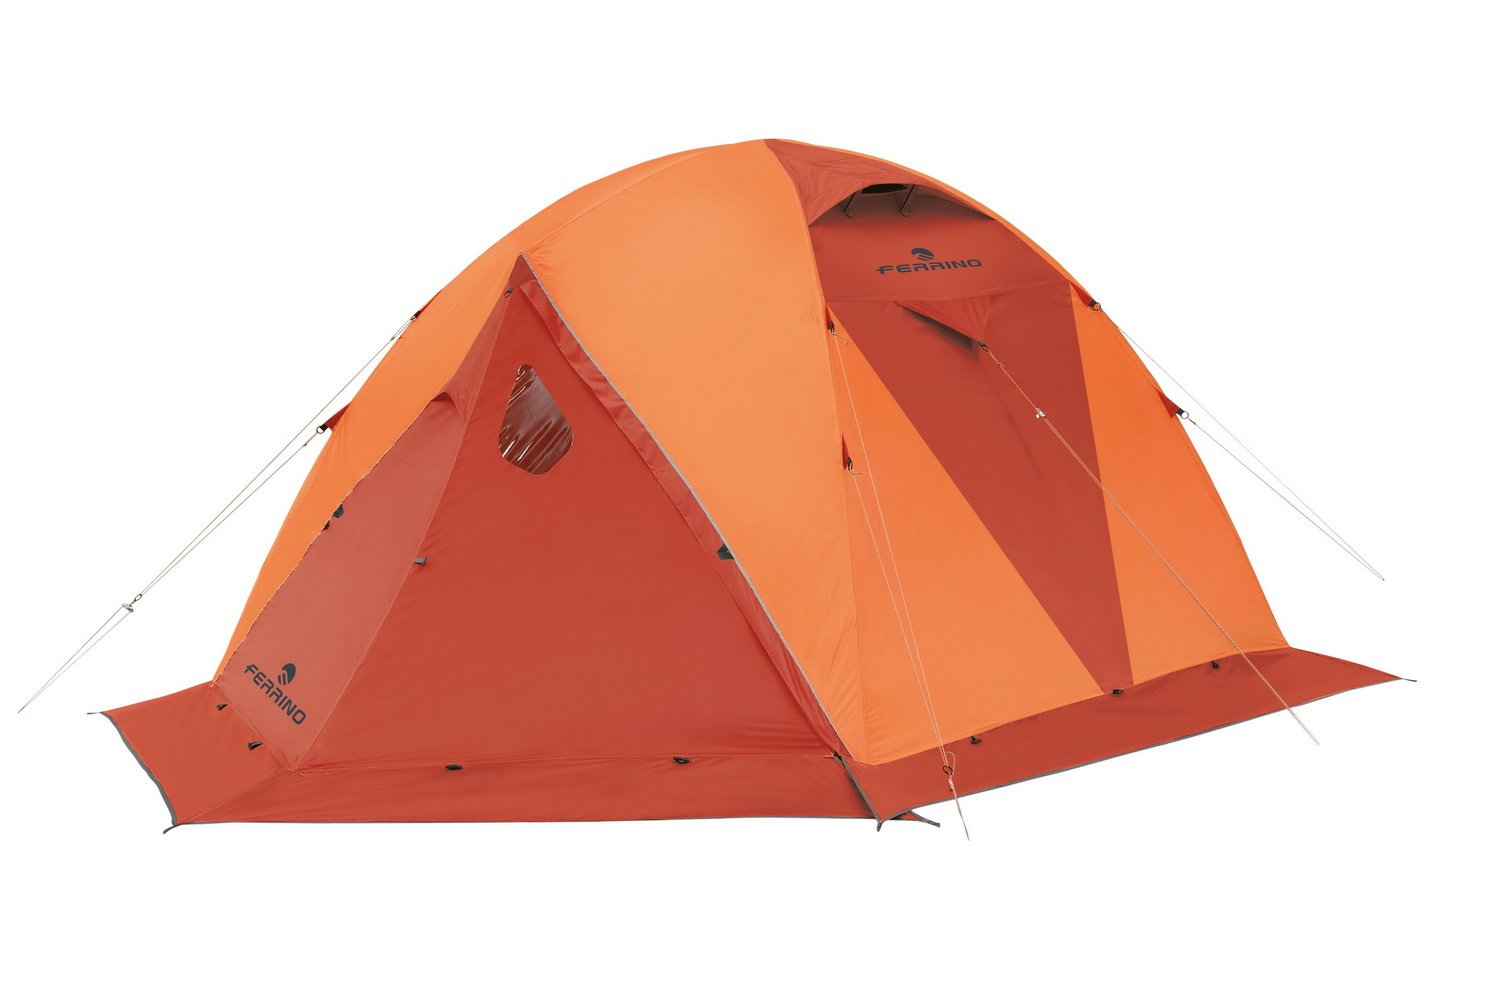 Ferrino Lhotse Vorhang, Orange, 4 Personen